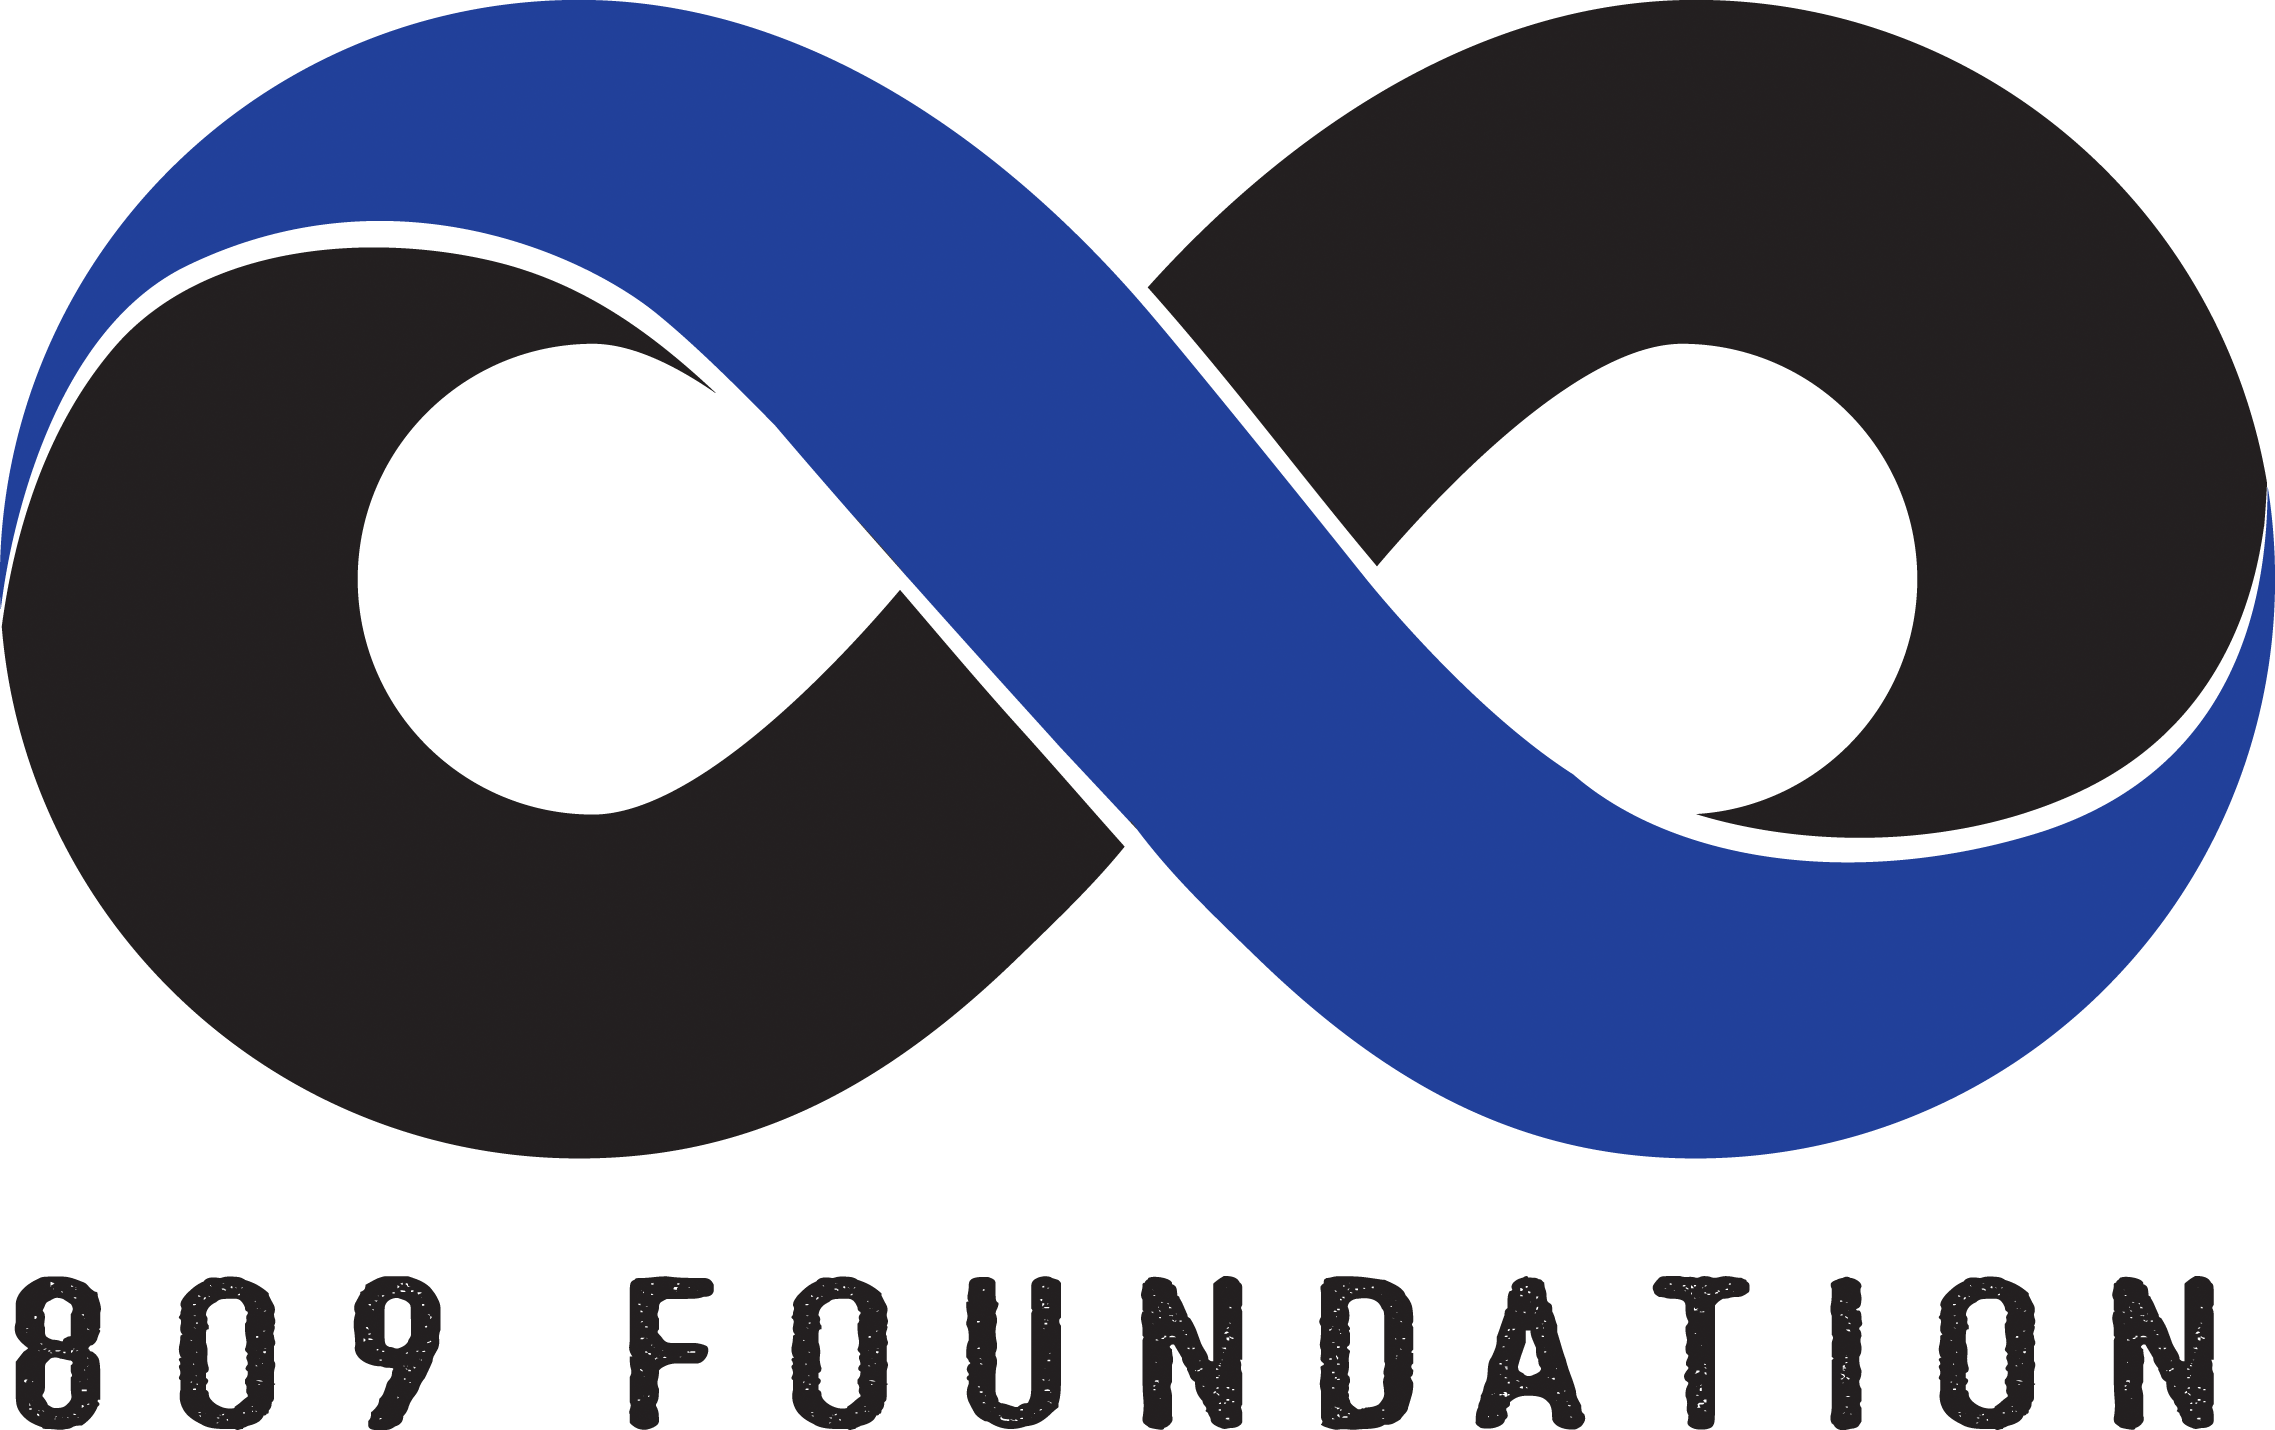 809-foundation-stacked-crop.png